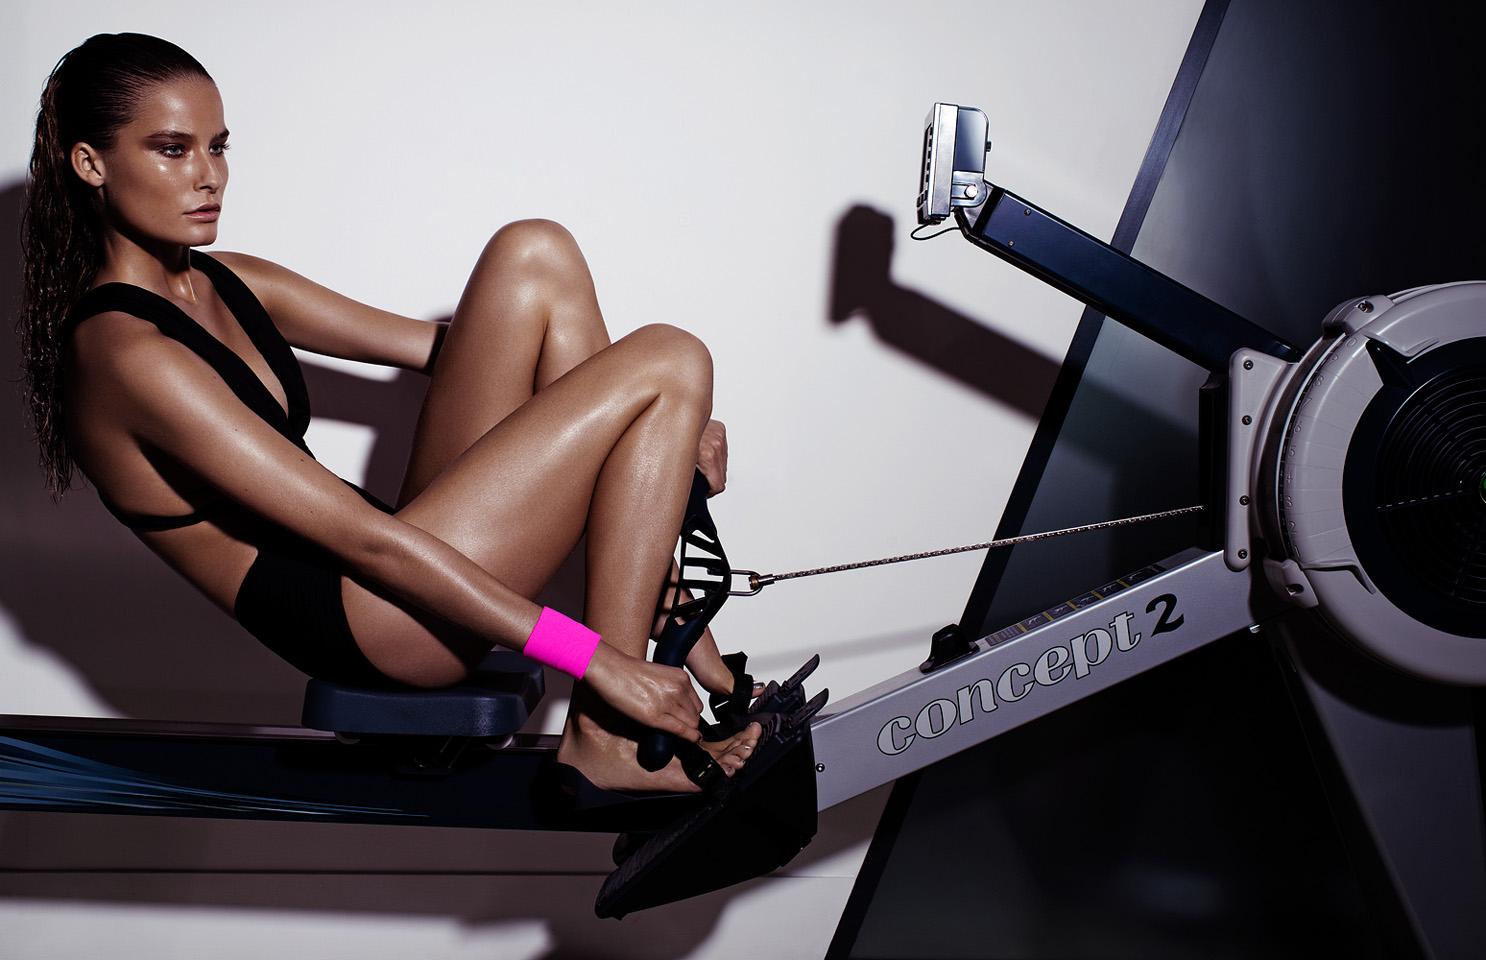 model workout grazia uk body suit swimsuit rowing machine